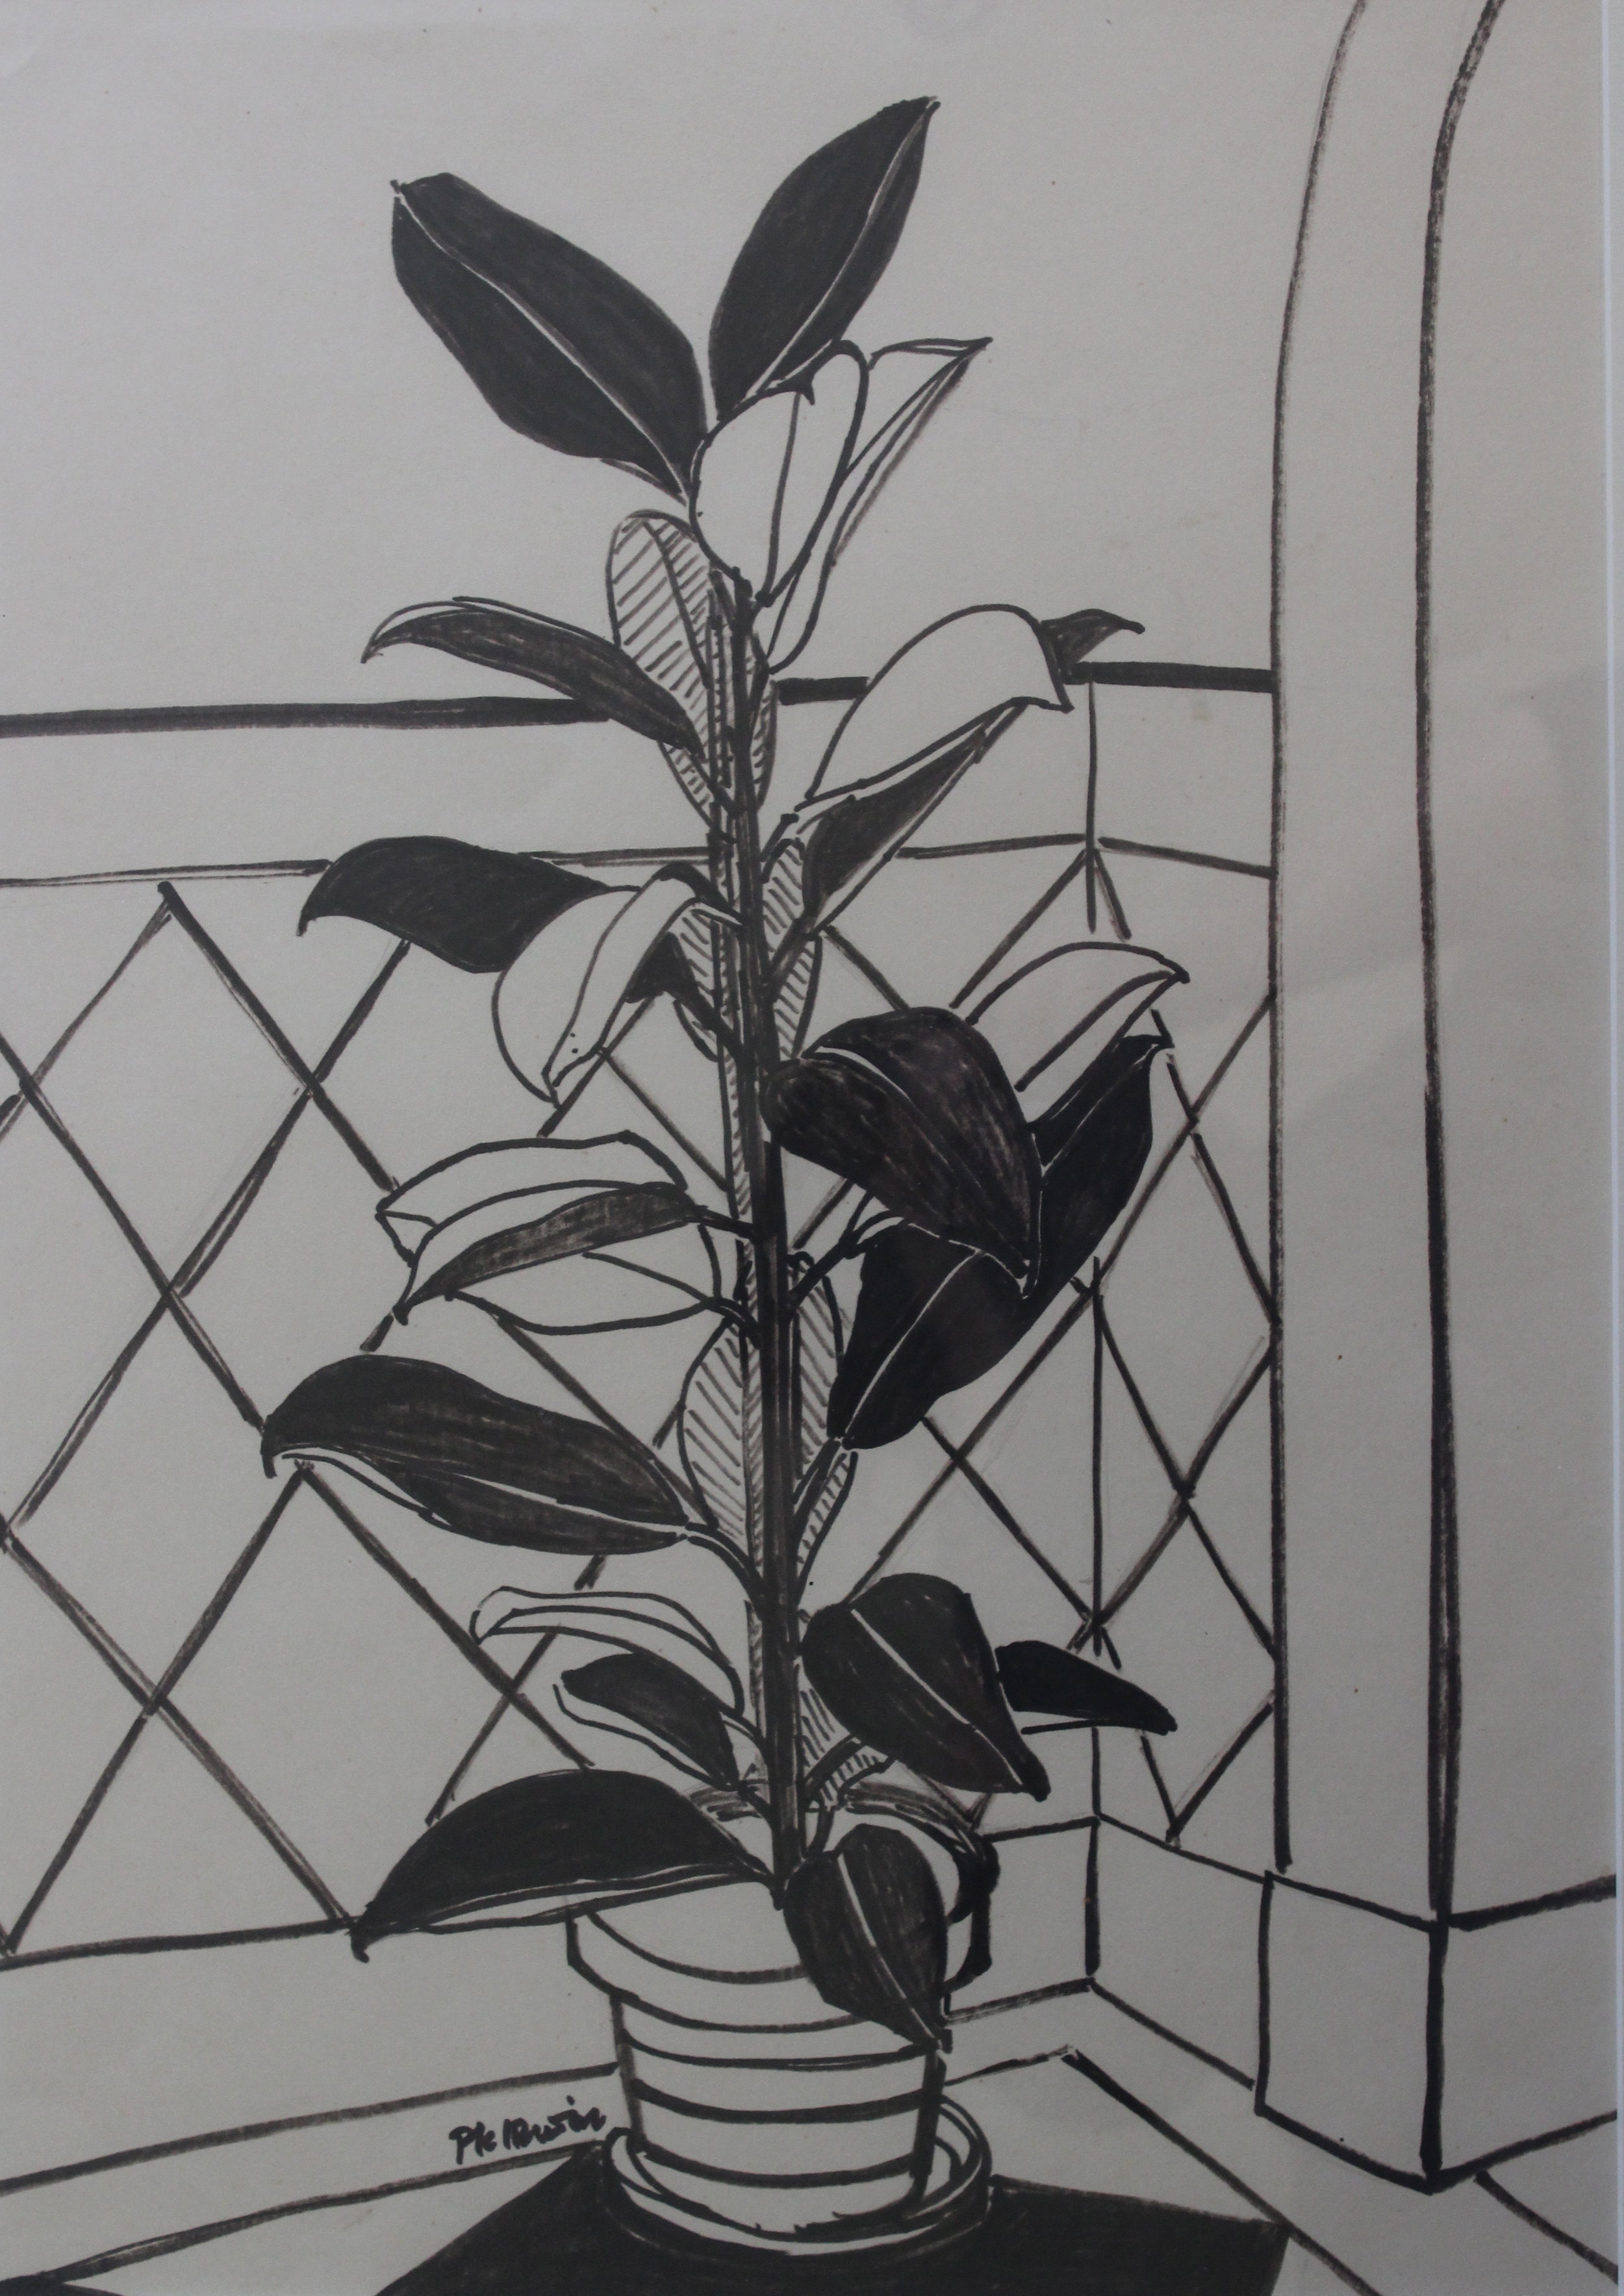 P.K. Irwin (Page), Untitled (Plant in Black Ink)